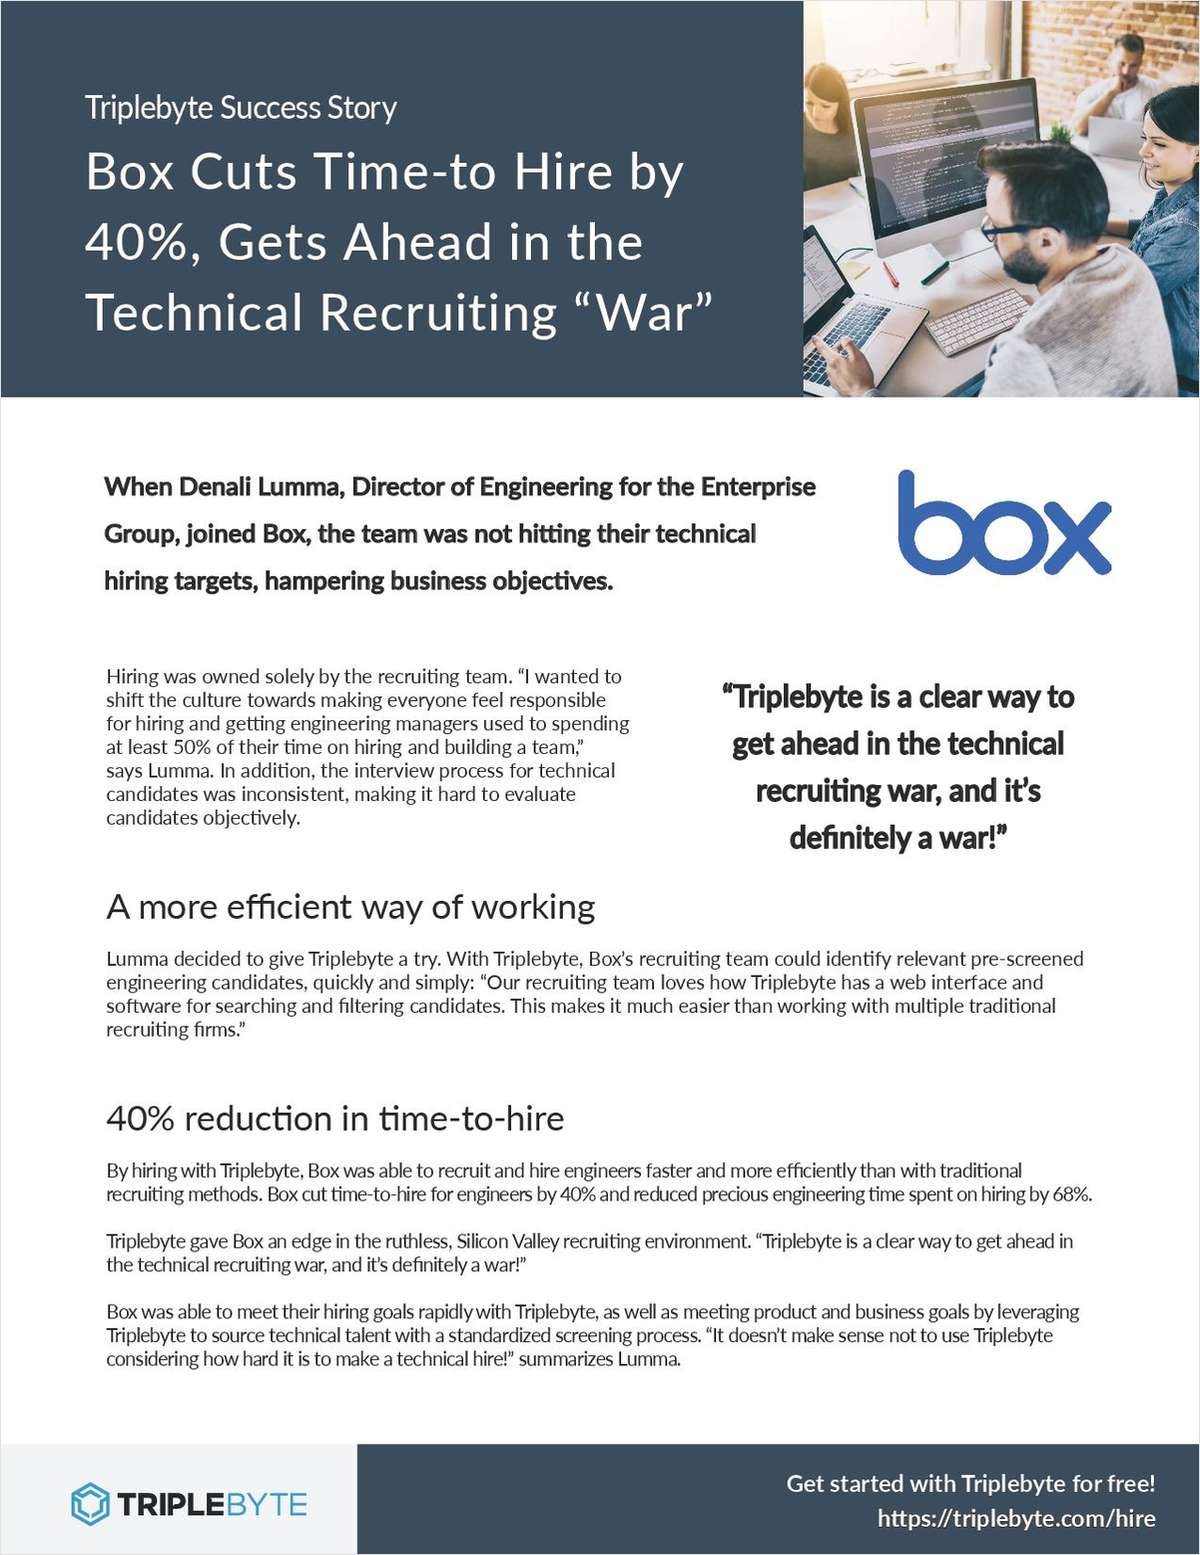 How Box Got the Edge in the Ruthless, Silicon Valley Recruiting Environment